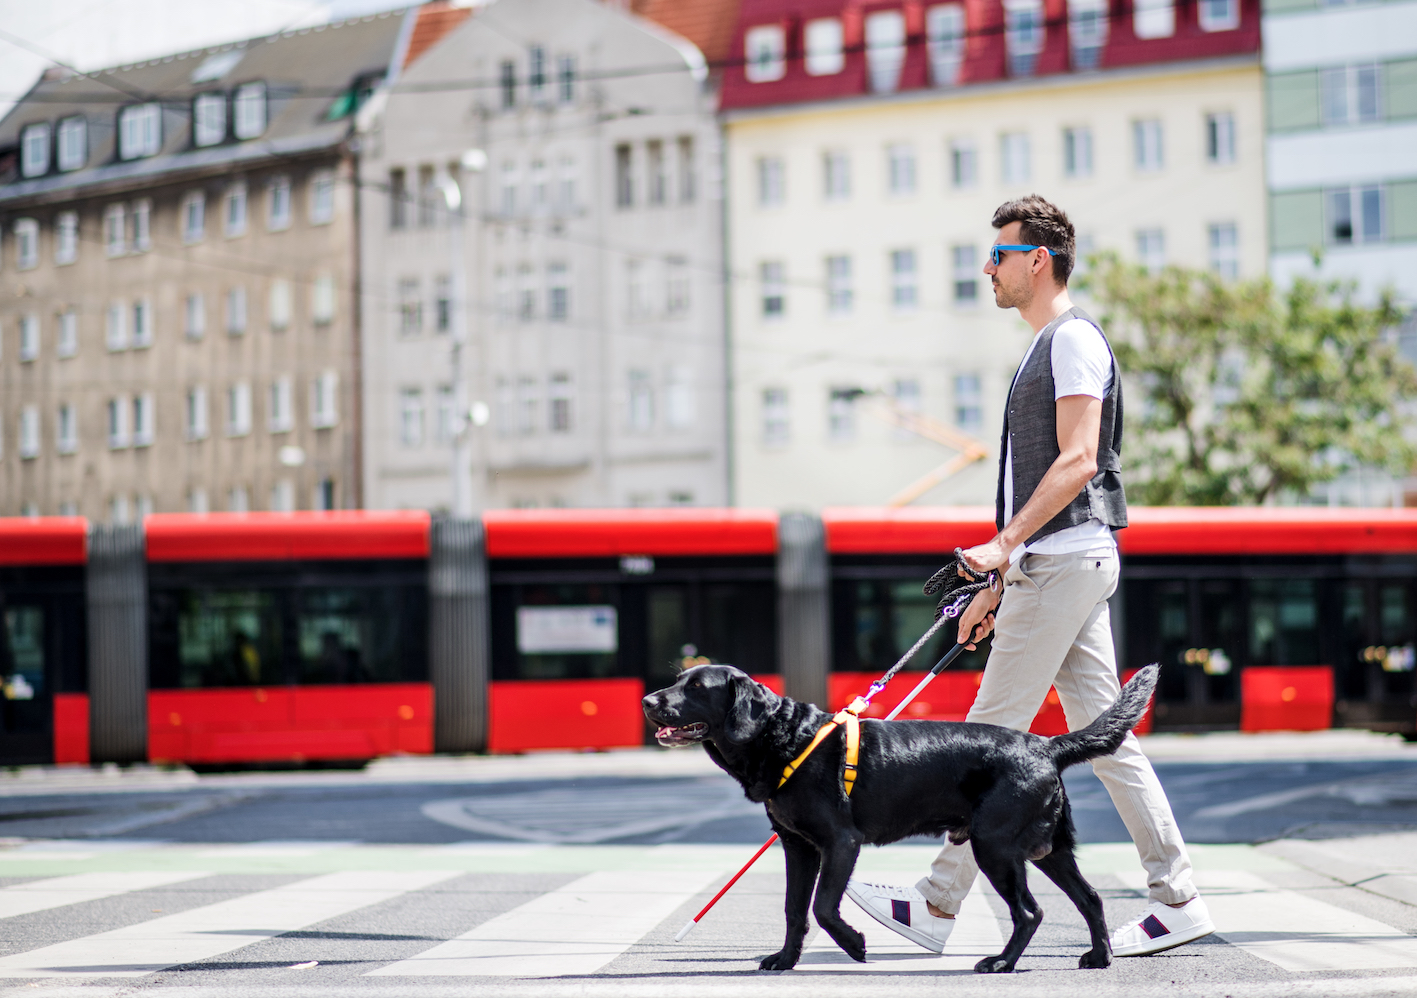 Side view of young blind man with white cane and guide dog walking across street in city.